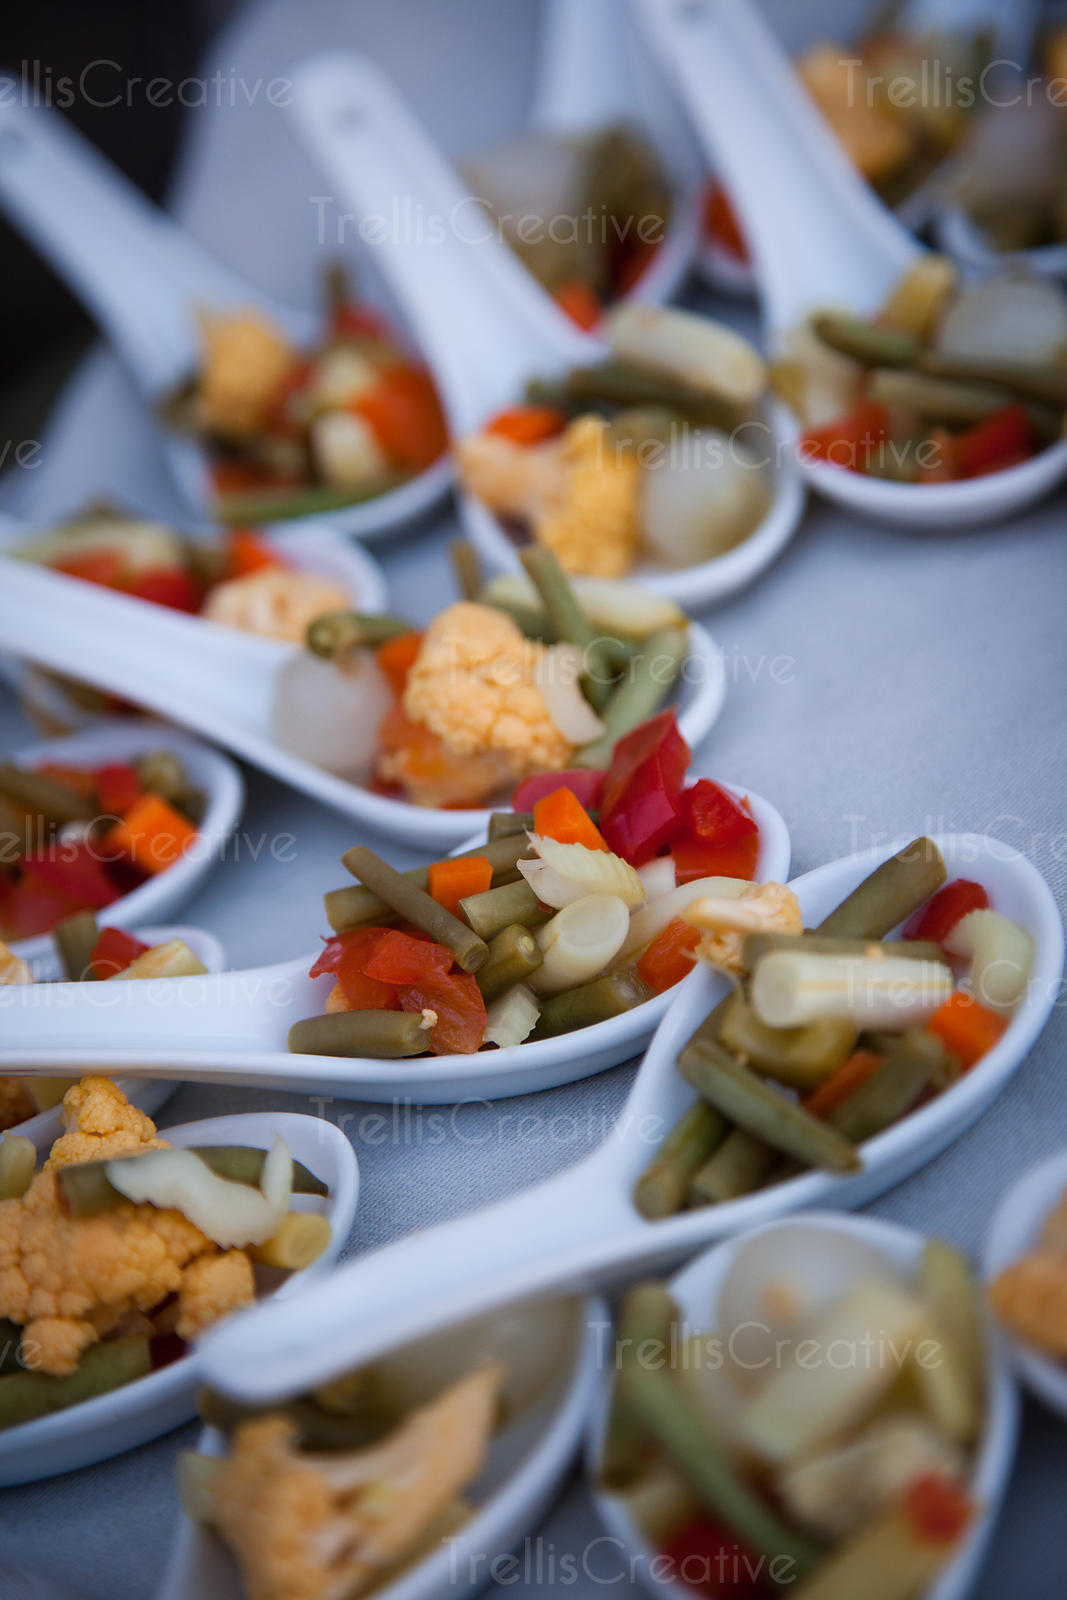 Marinated vegetables served on individual white spoons